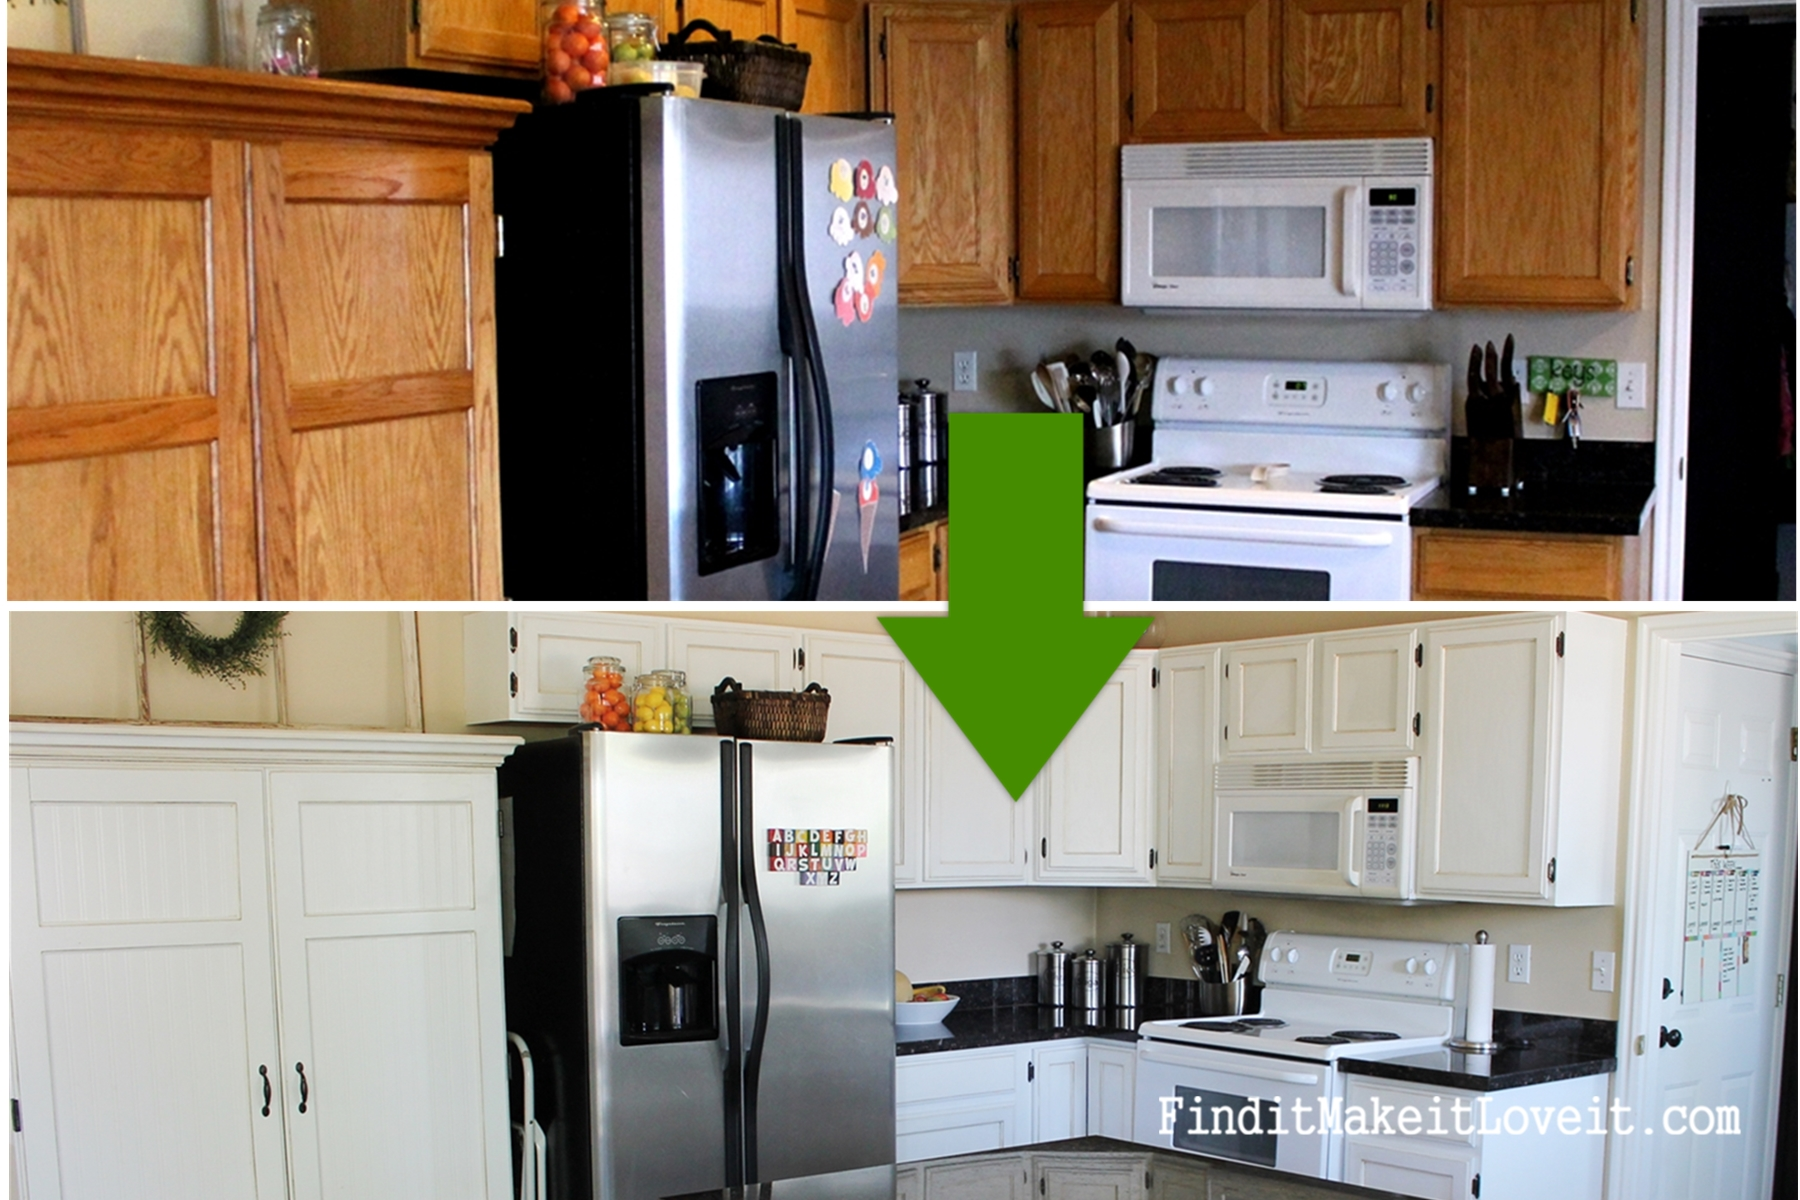 Kitchen Cabinet Makeover Find It Make It Love It - Diy kitchen cabinets makeover